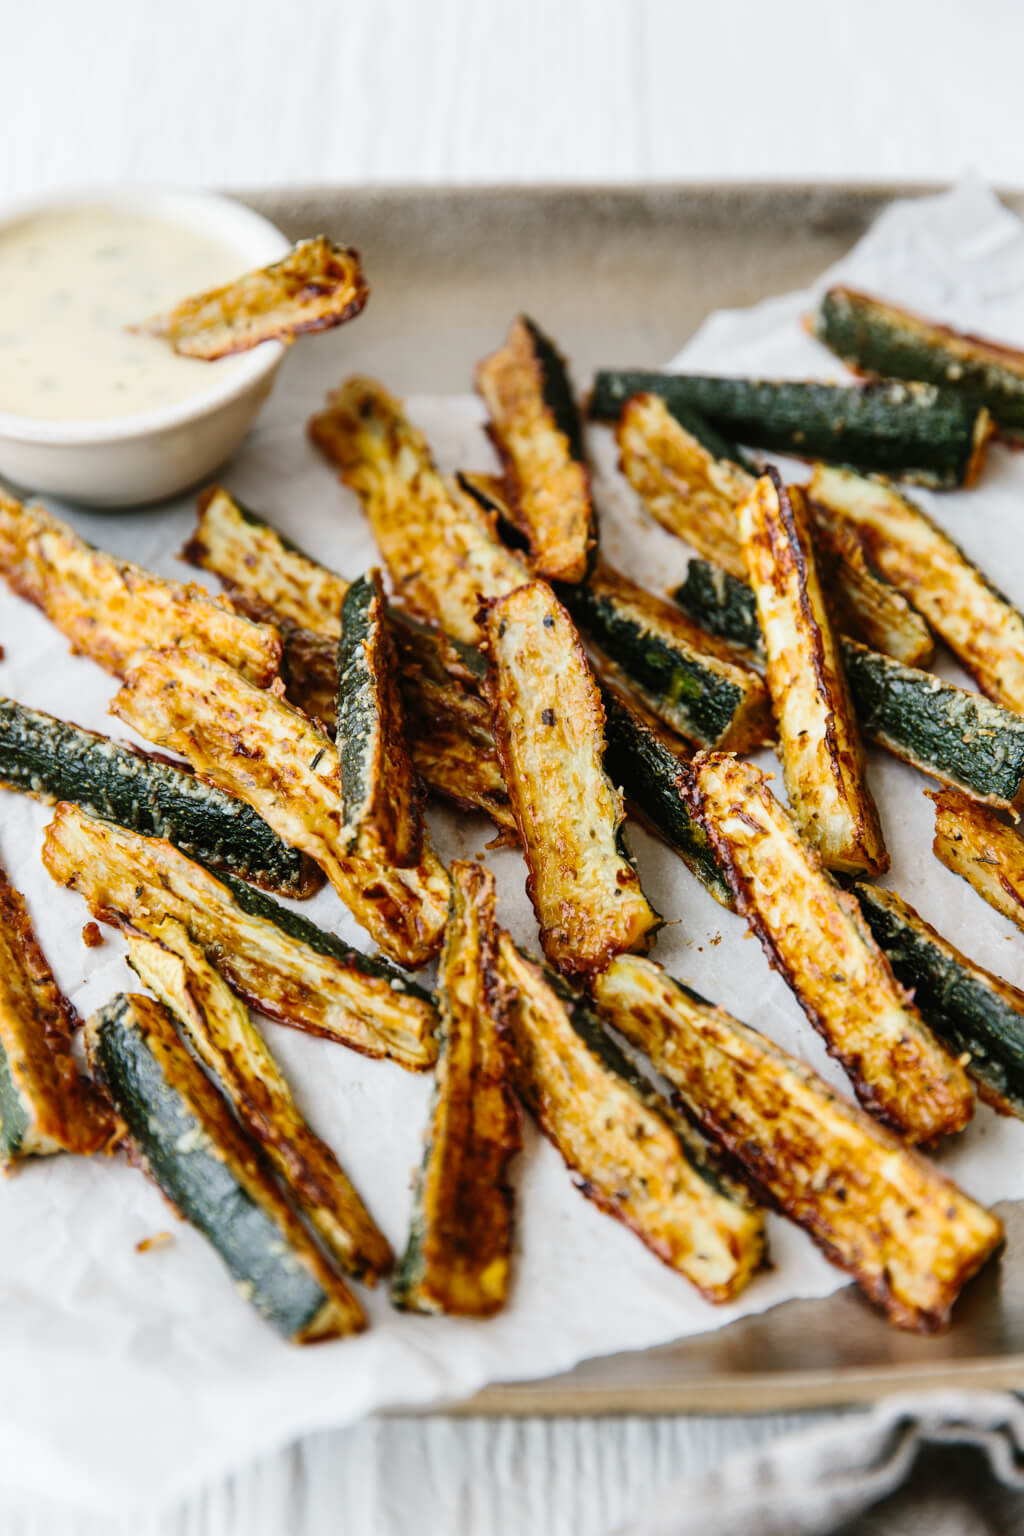 Baked zucchini fries on a platter.